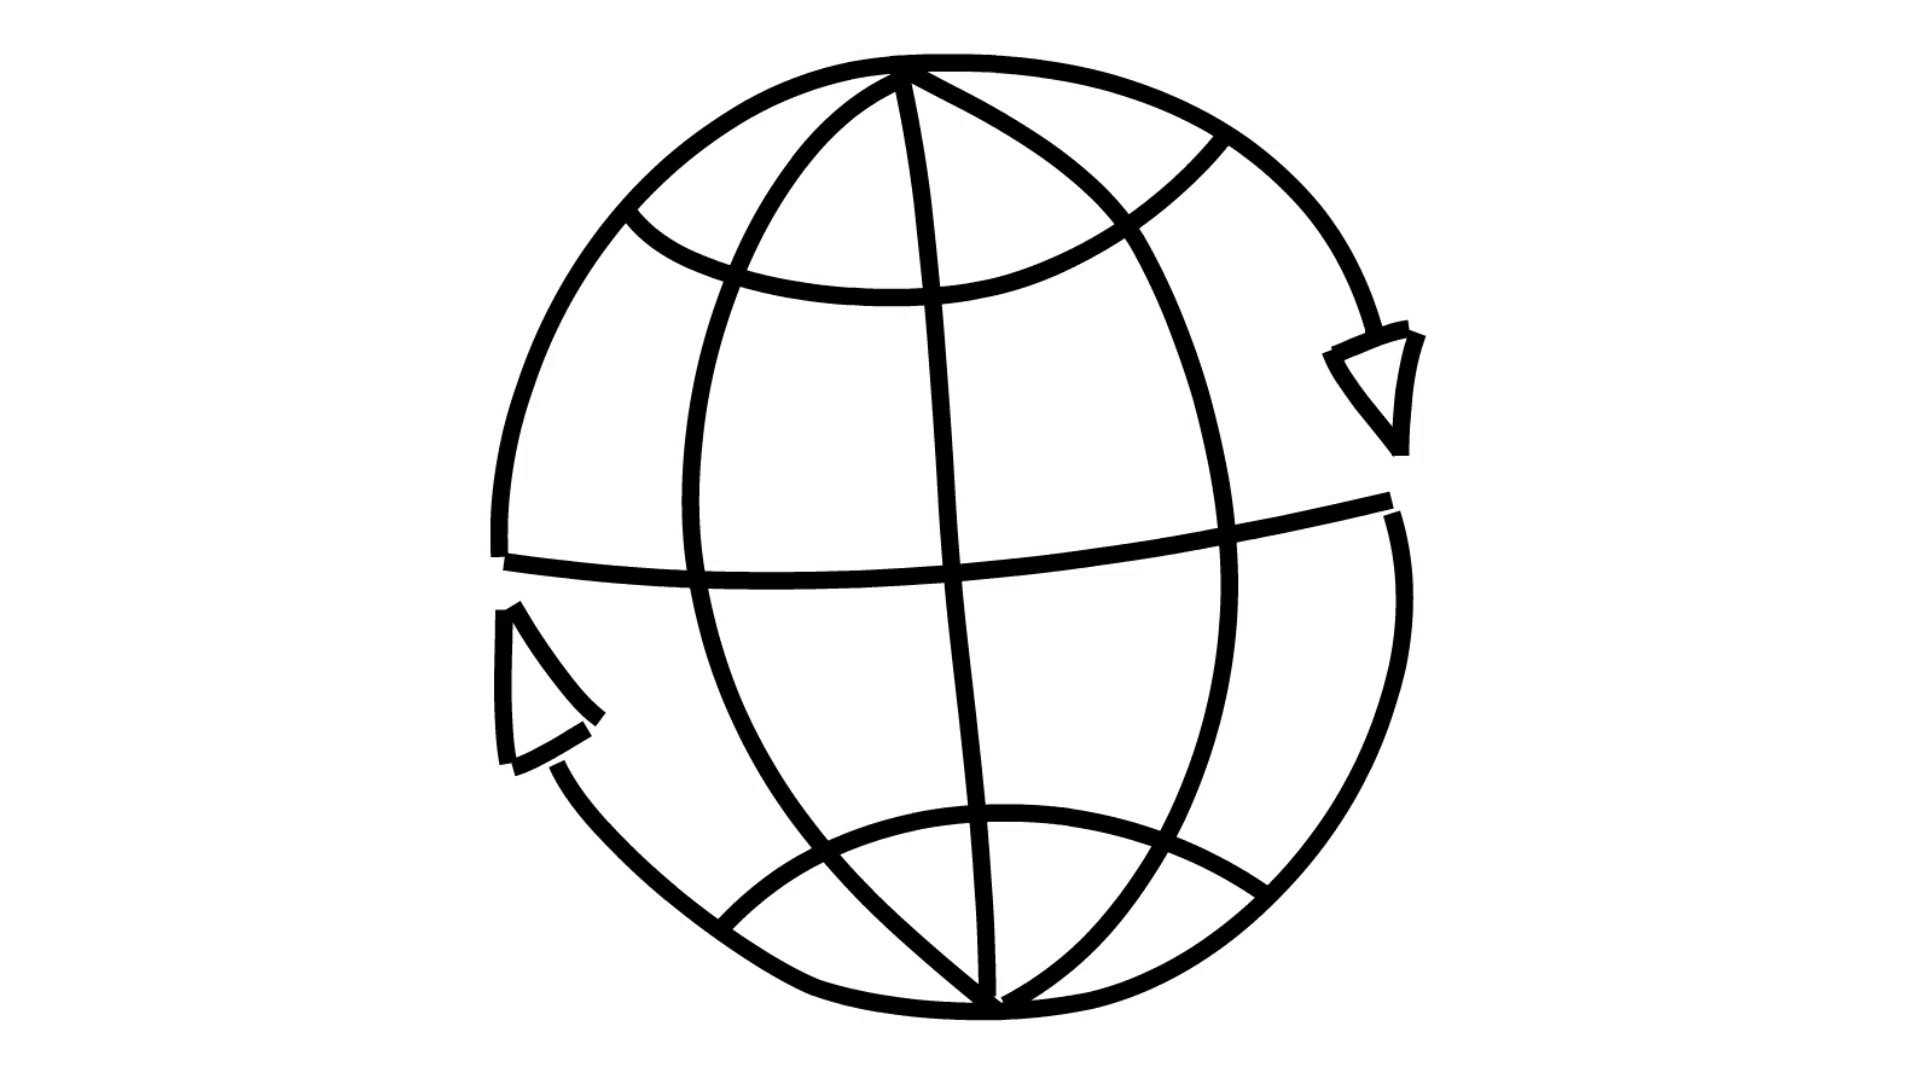 World globe drawing at getdrawings free for personal use world 1920x1080 atlas world map globe internet line drawing illustration animation gumiabroncs Choice Image